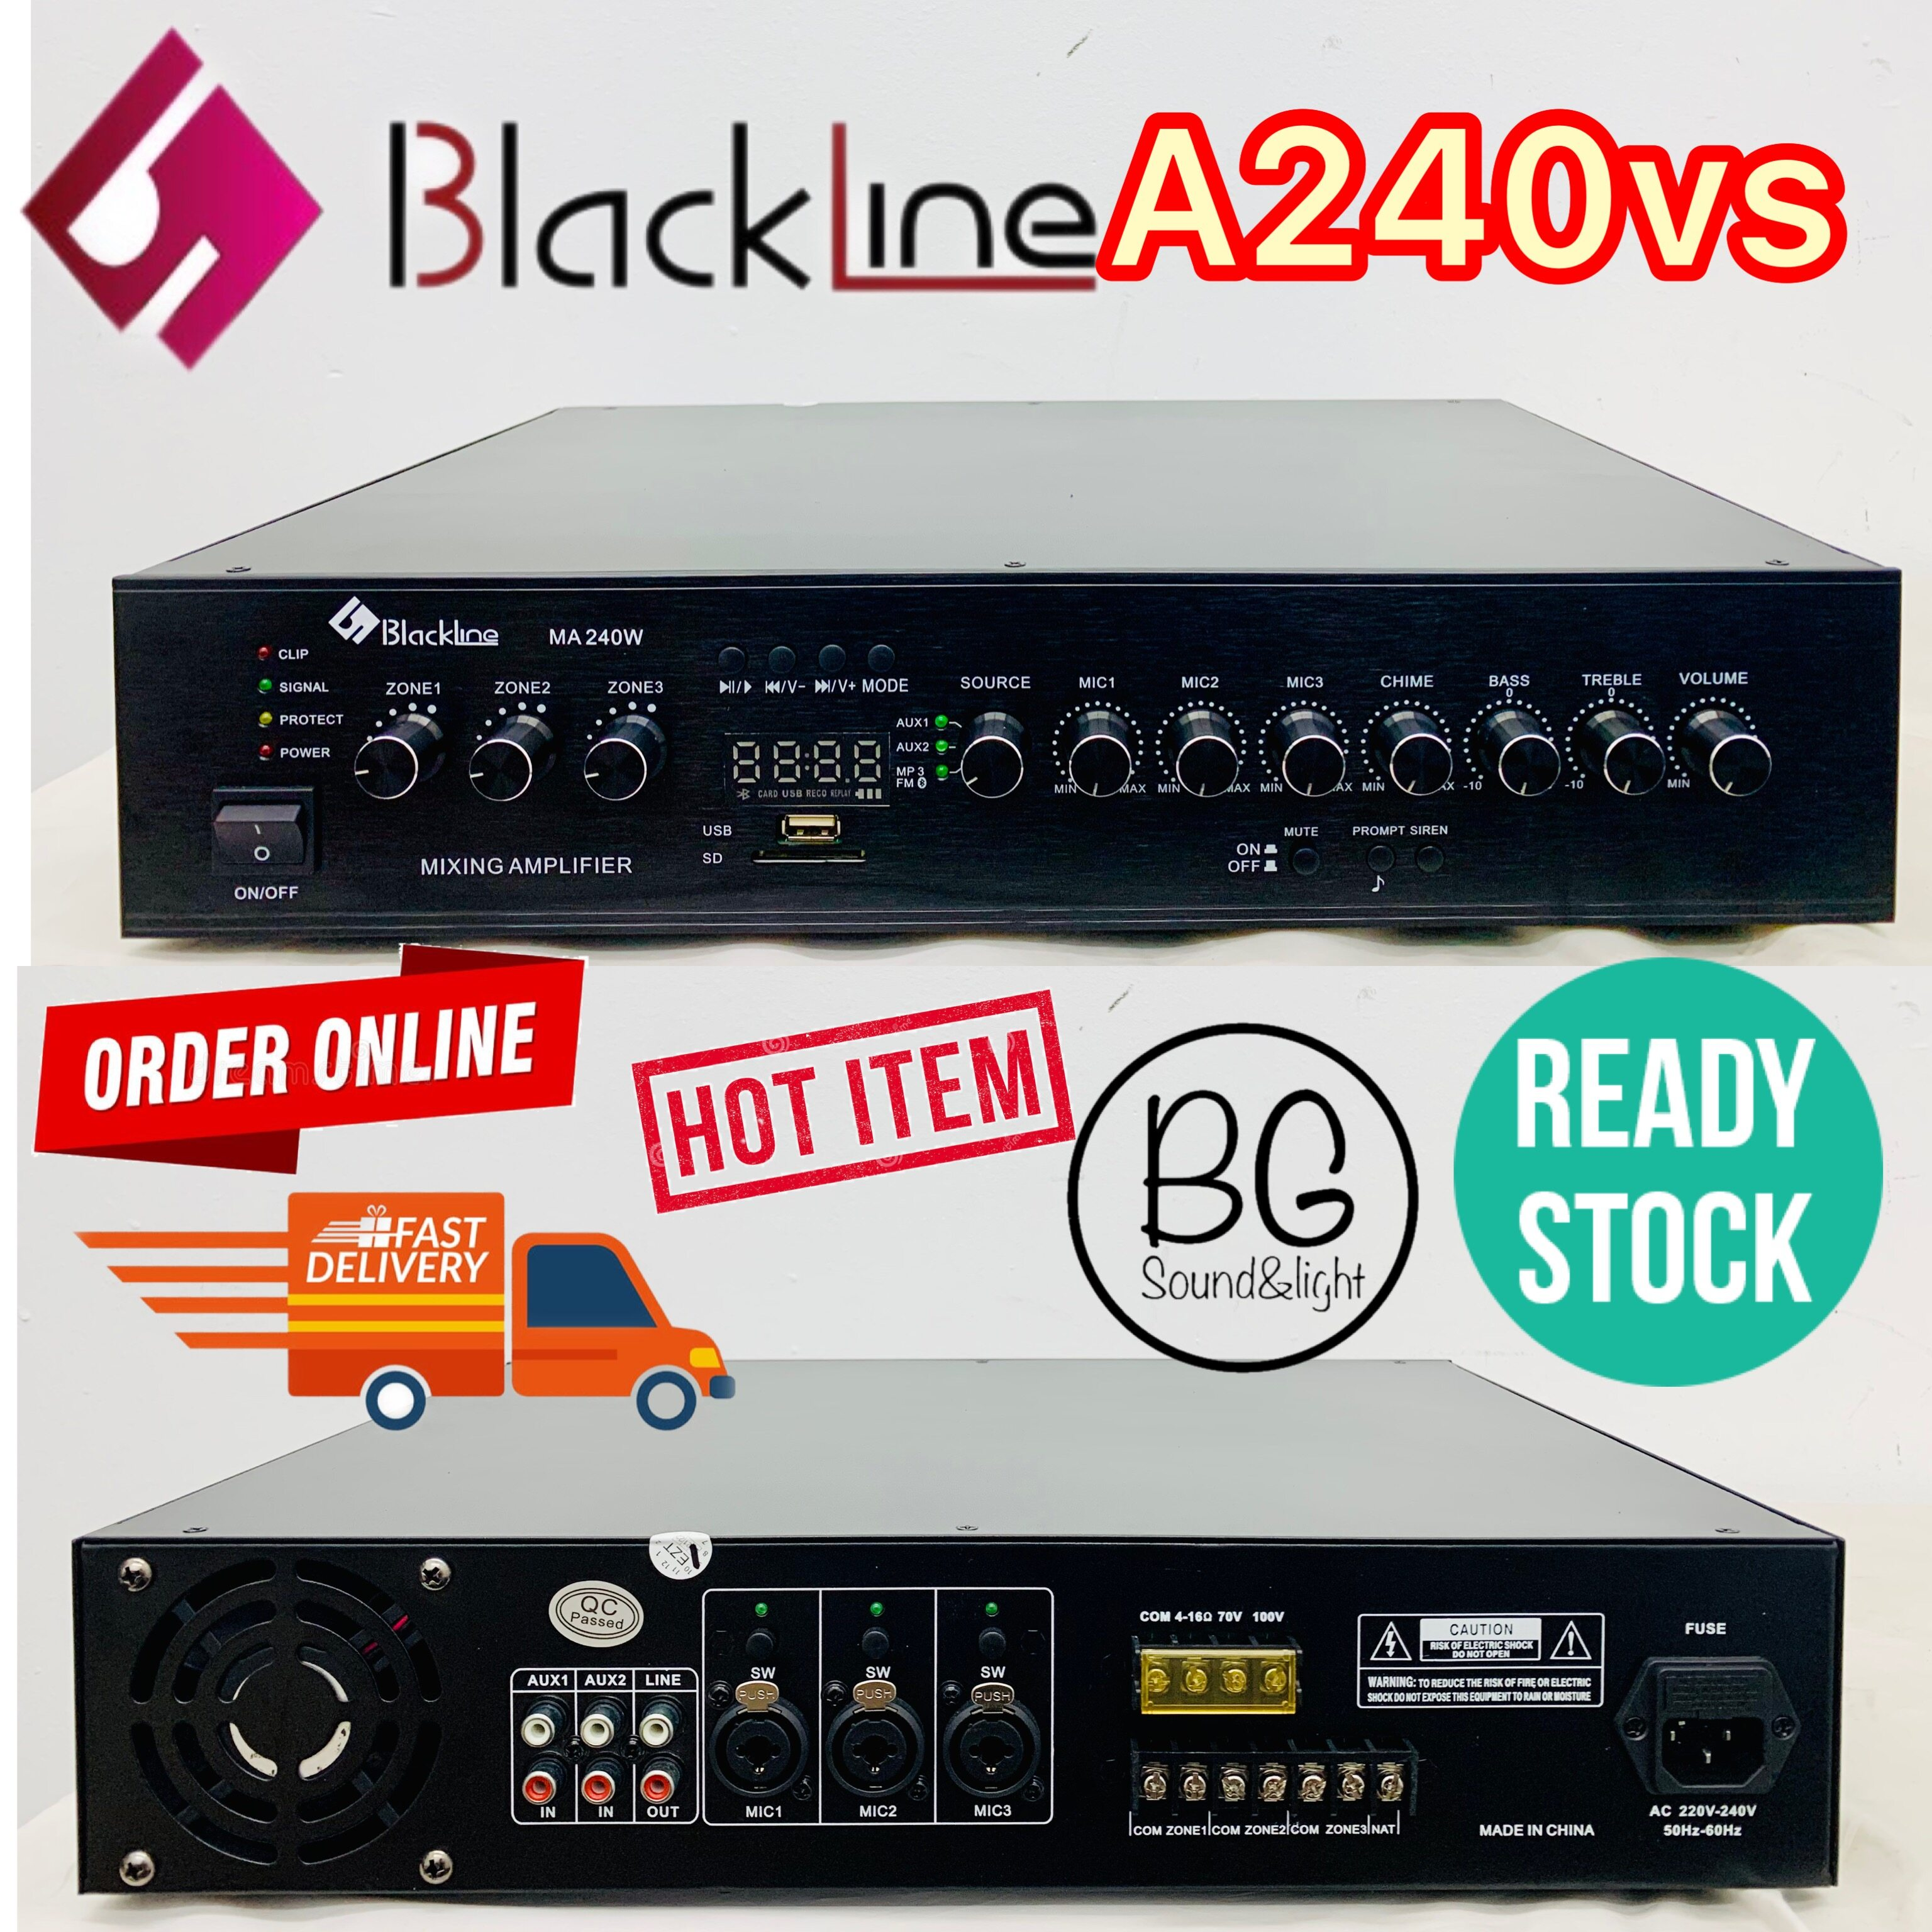 [Ready Stock]Blackline A240VS 240W Public Address PA System Mixing Amplifier With 3 Mic Input/ USB / 3 Zones With Volume